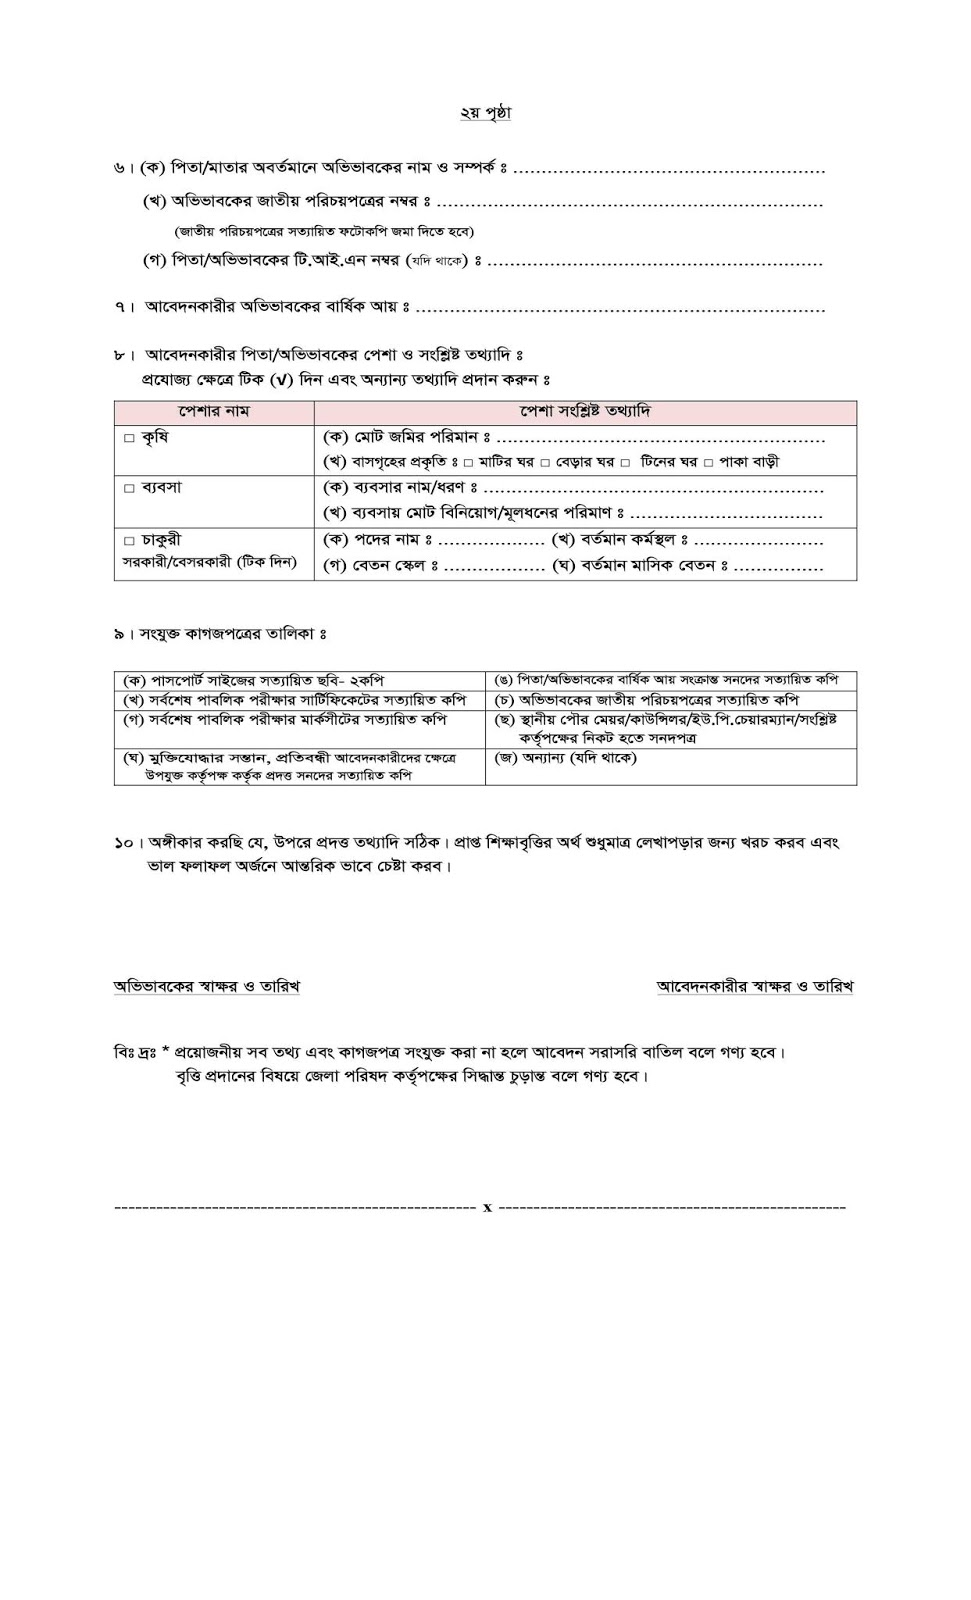 Zila Parishad Gazipur SSC/Equivalent and HSC/Equivalent Scholarship 2018-2019 Application Form